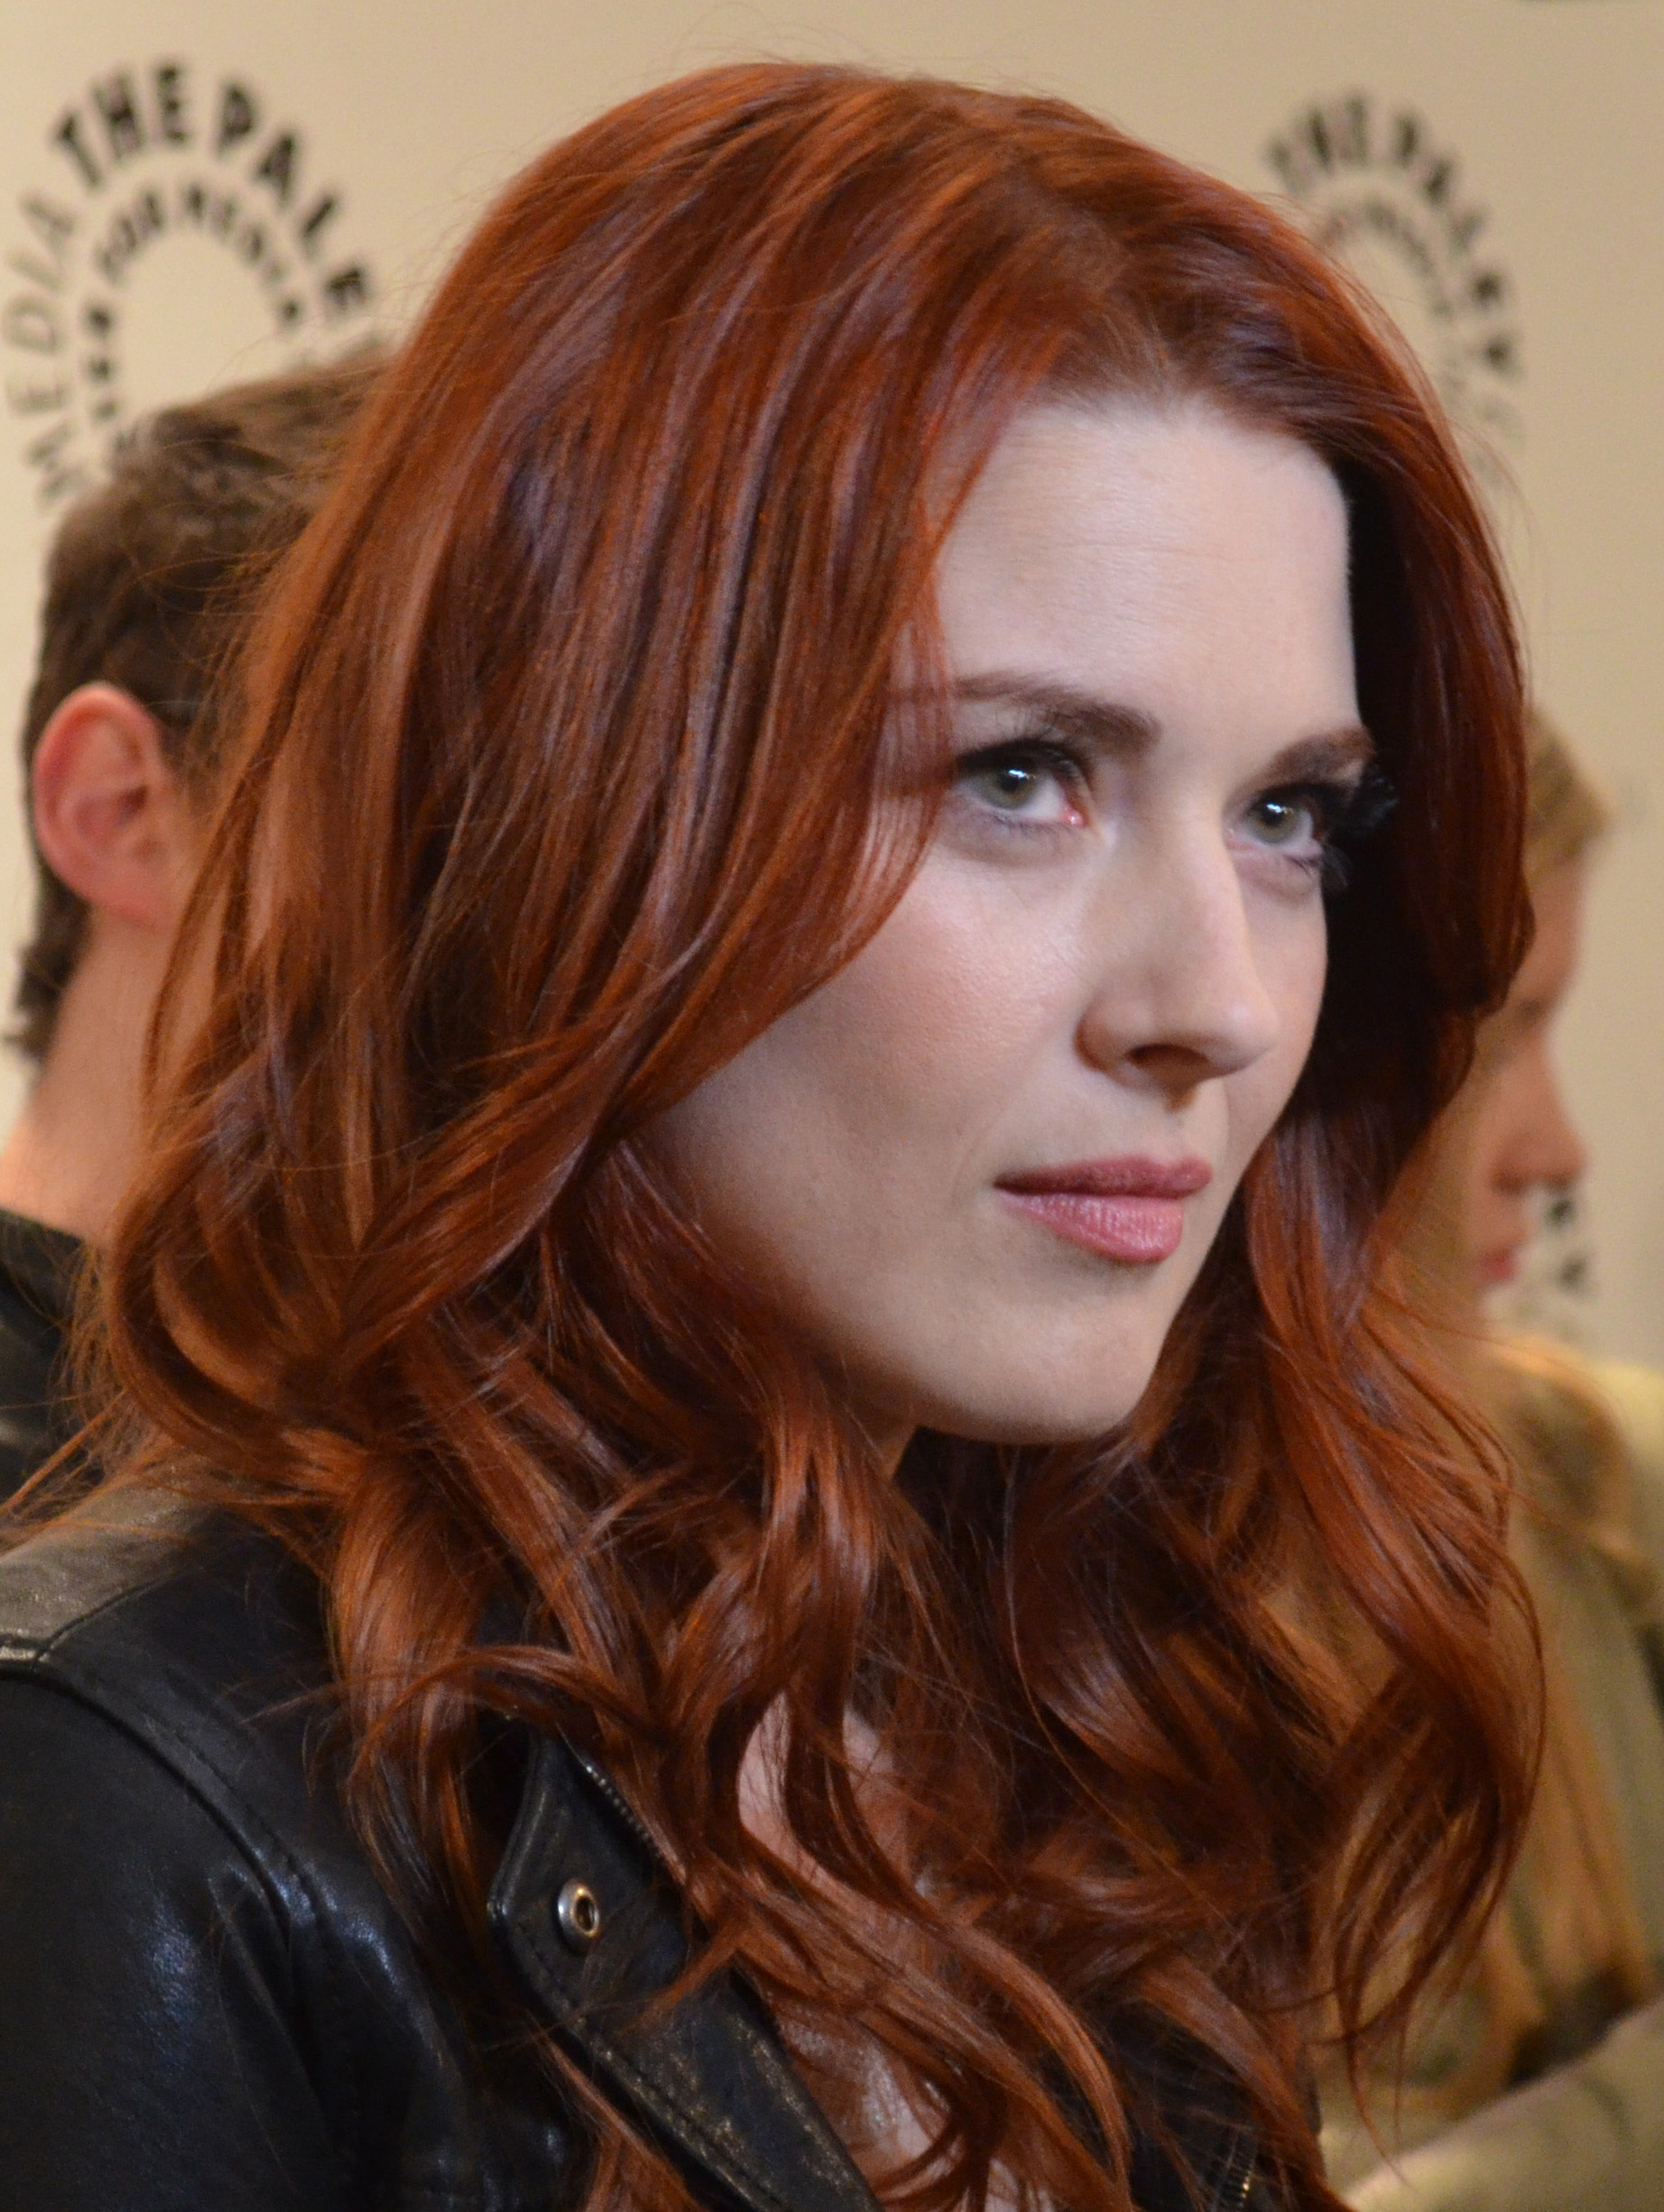 The 38-year old daughter of father (?) and mother(?) Alexandra Breckenridge in 2020 photo. Alexandra Breckenridge earned a million dollar salary - leaving the net worth at 2 million in 2020